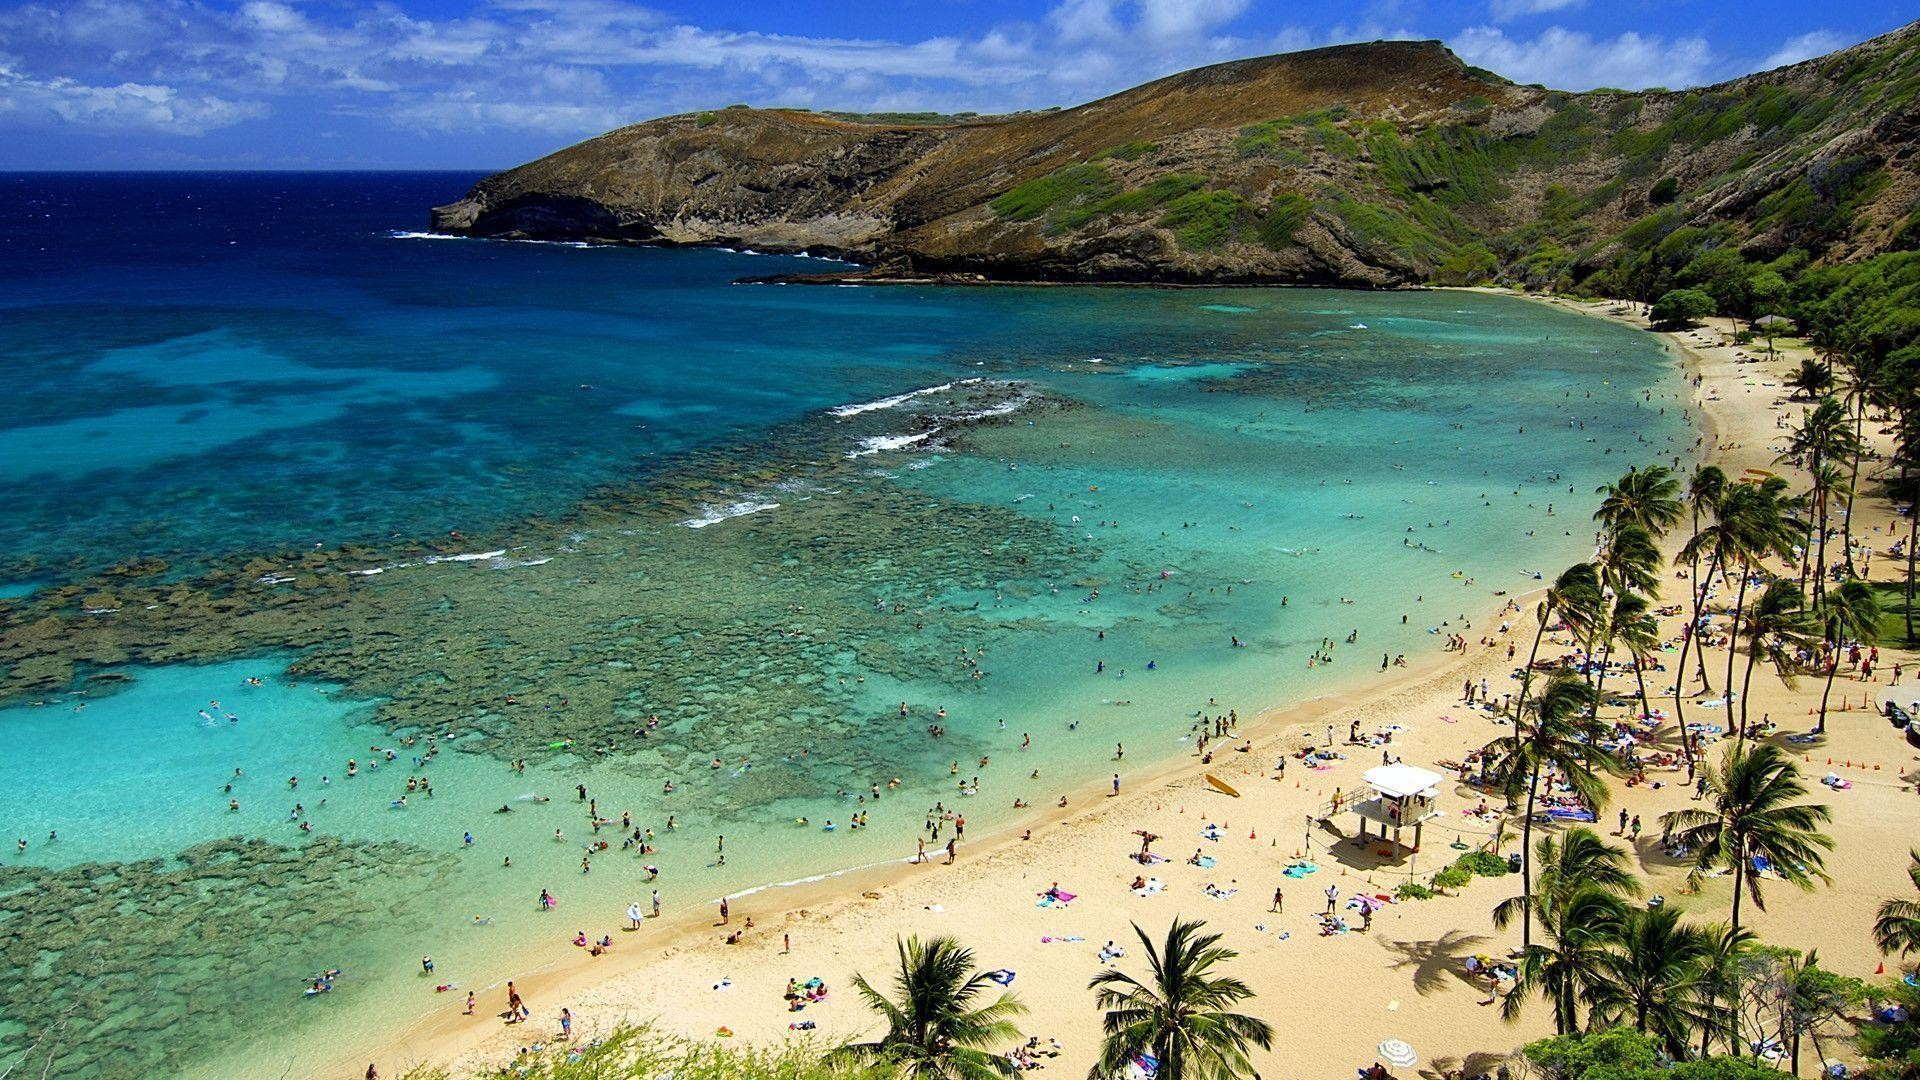 1920x1080 Afternoon Hawaii Beach Wallpaper Wide #13126 Wallpaper | Wallpaper .